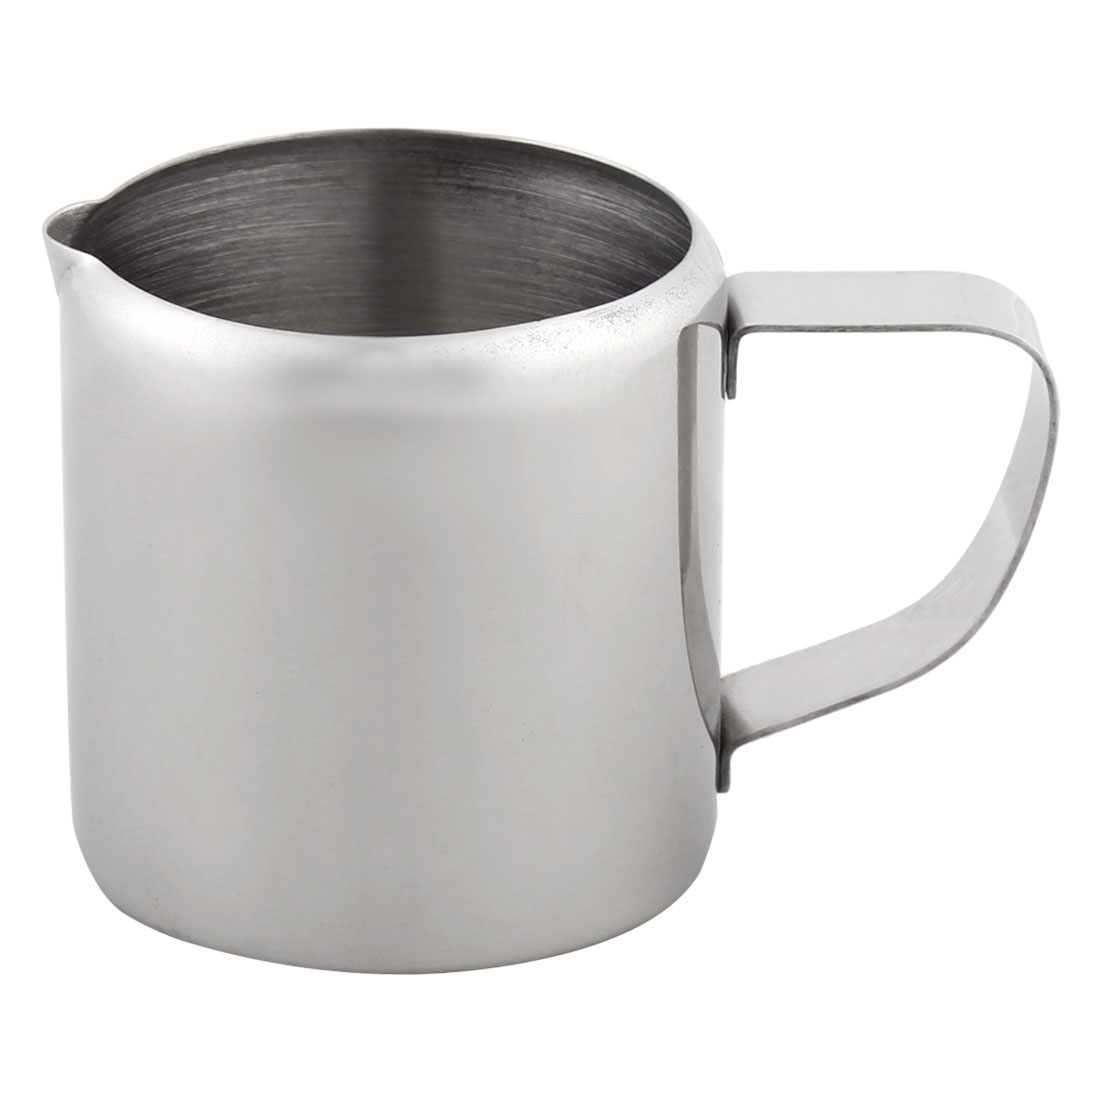 Kitchen Laboratory Stainless Steel Handle Water Liquid Measurement Cup Mug 10 Ounce